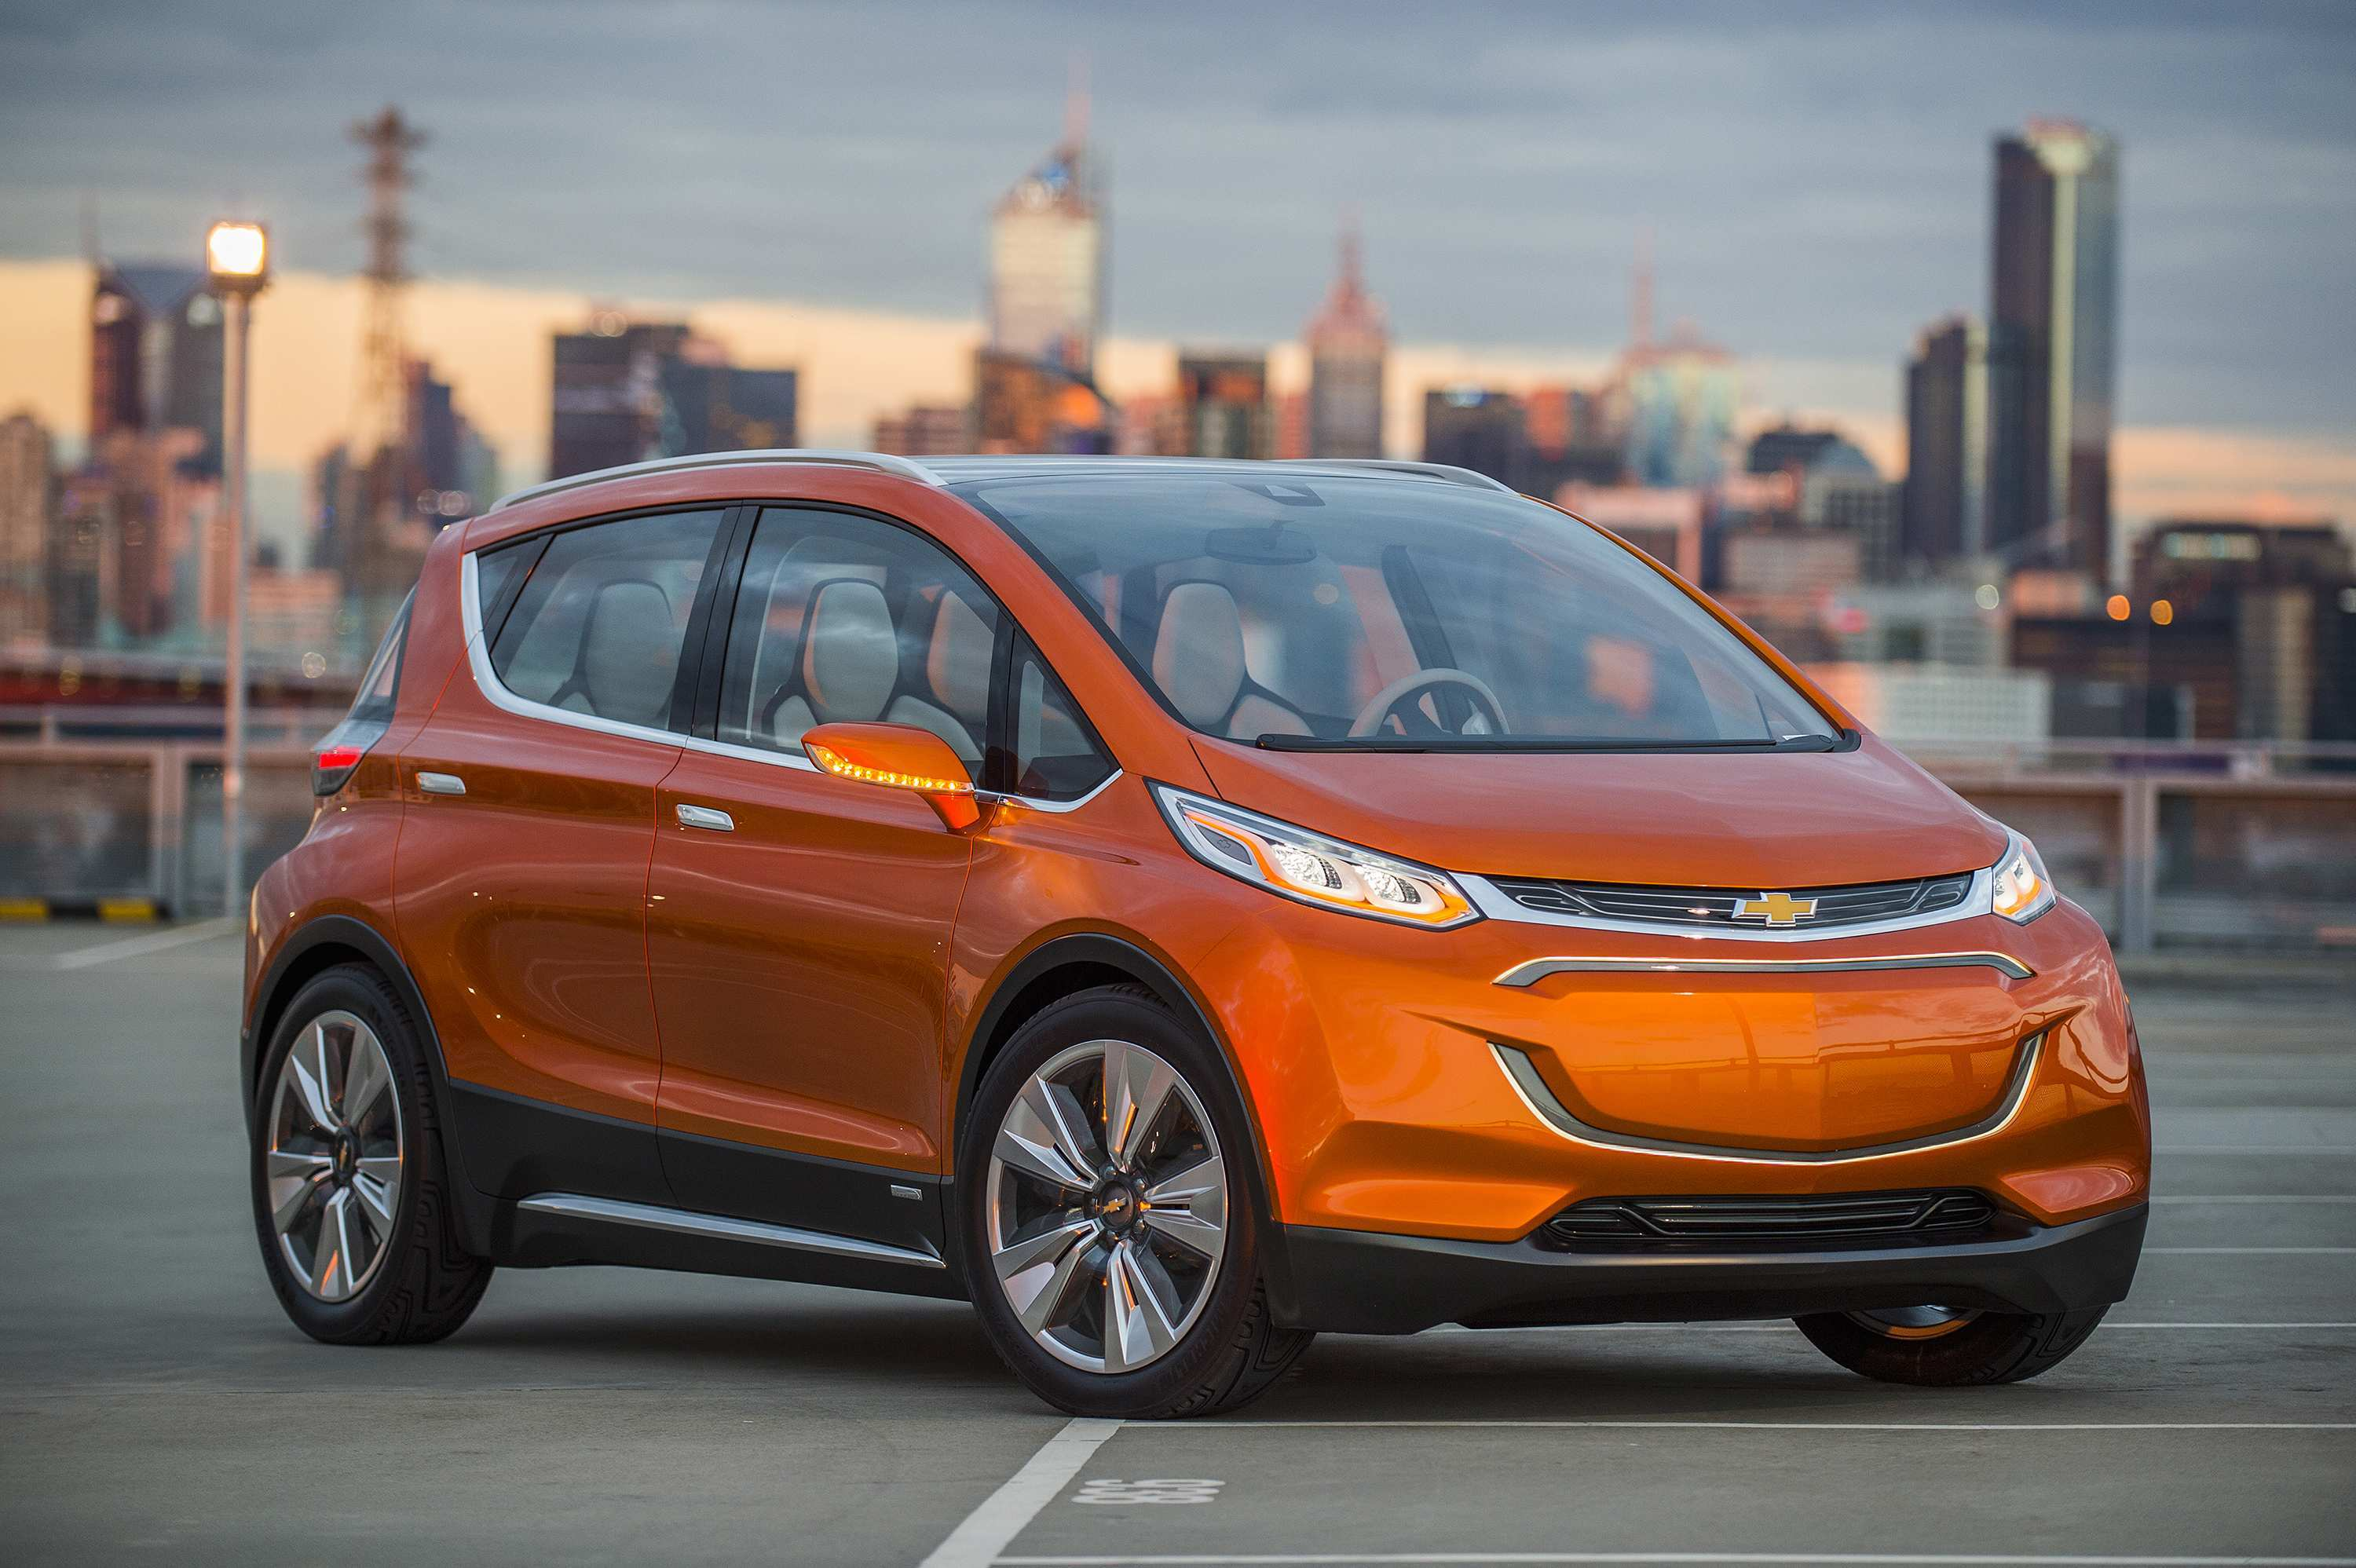 77 Best Review 2020 Chevrolet Bolt Ev Configurations by 2020 Chevrolet Bolt Ev